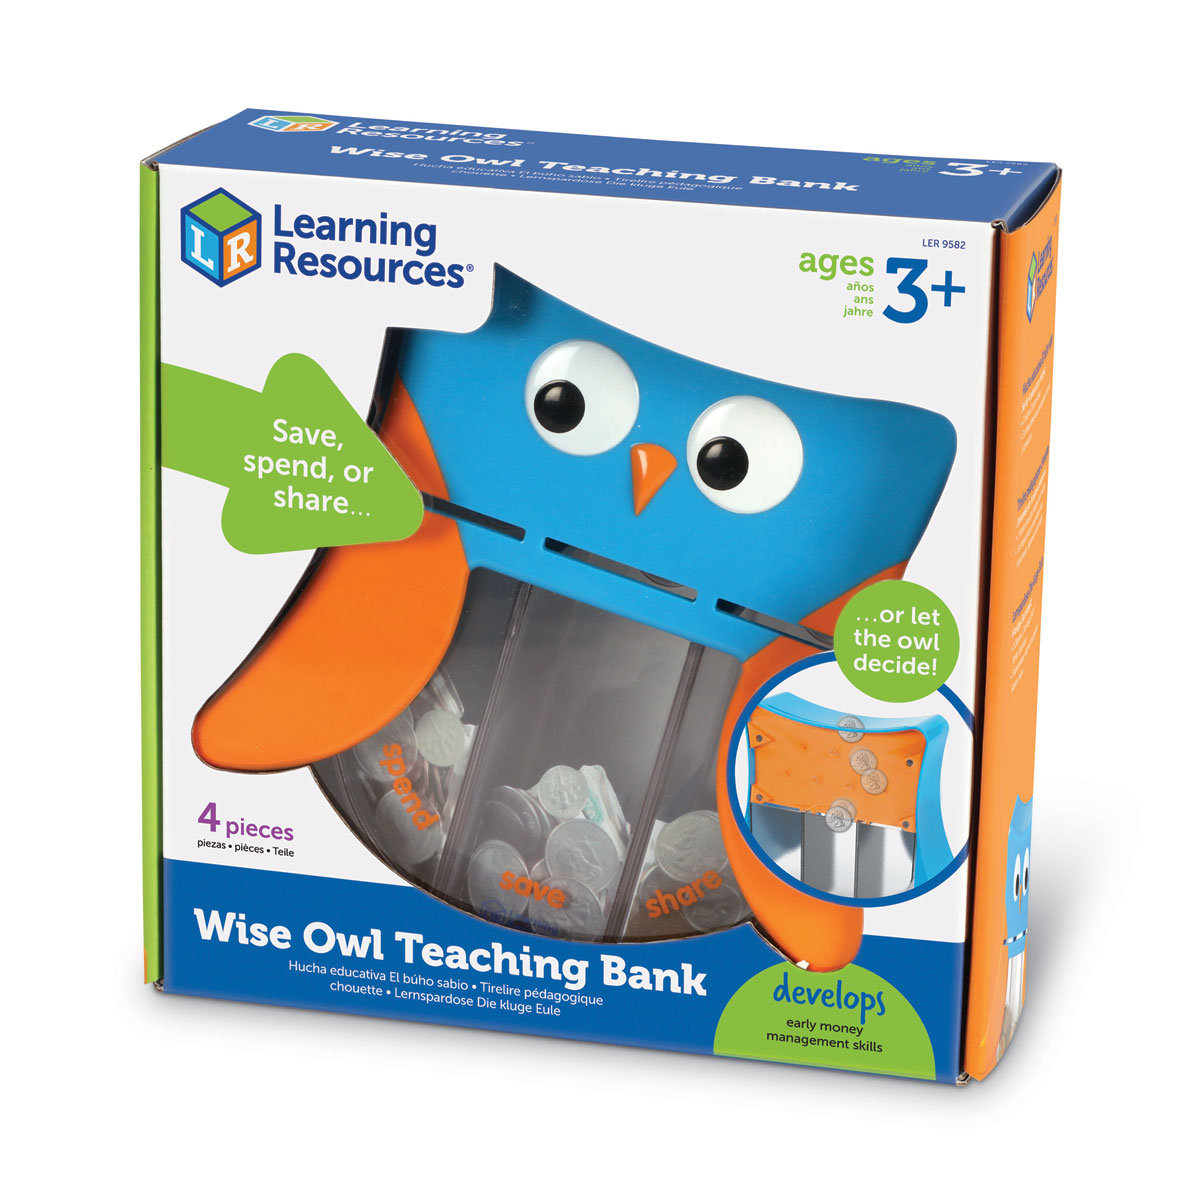 Wise Owl Teaching Bank - by Learning Resources